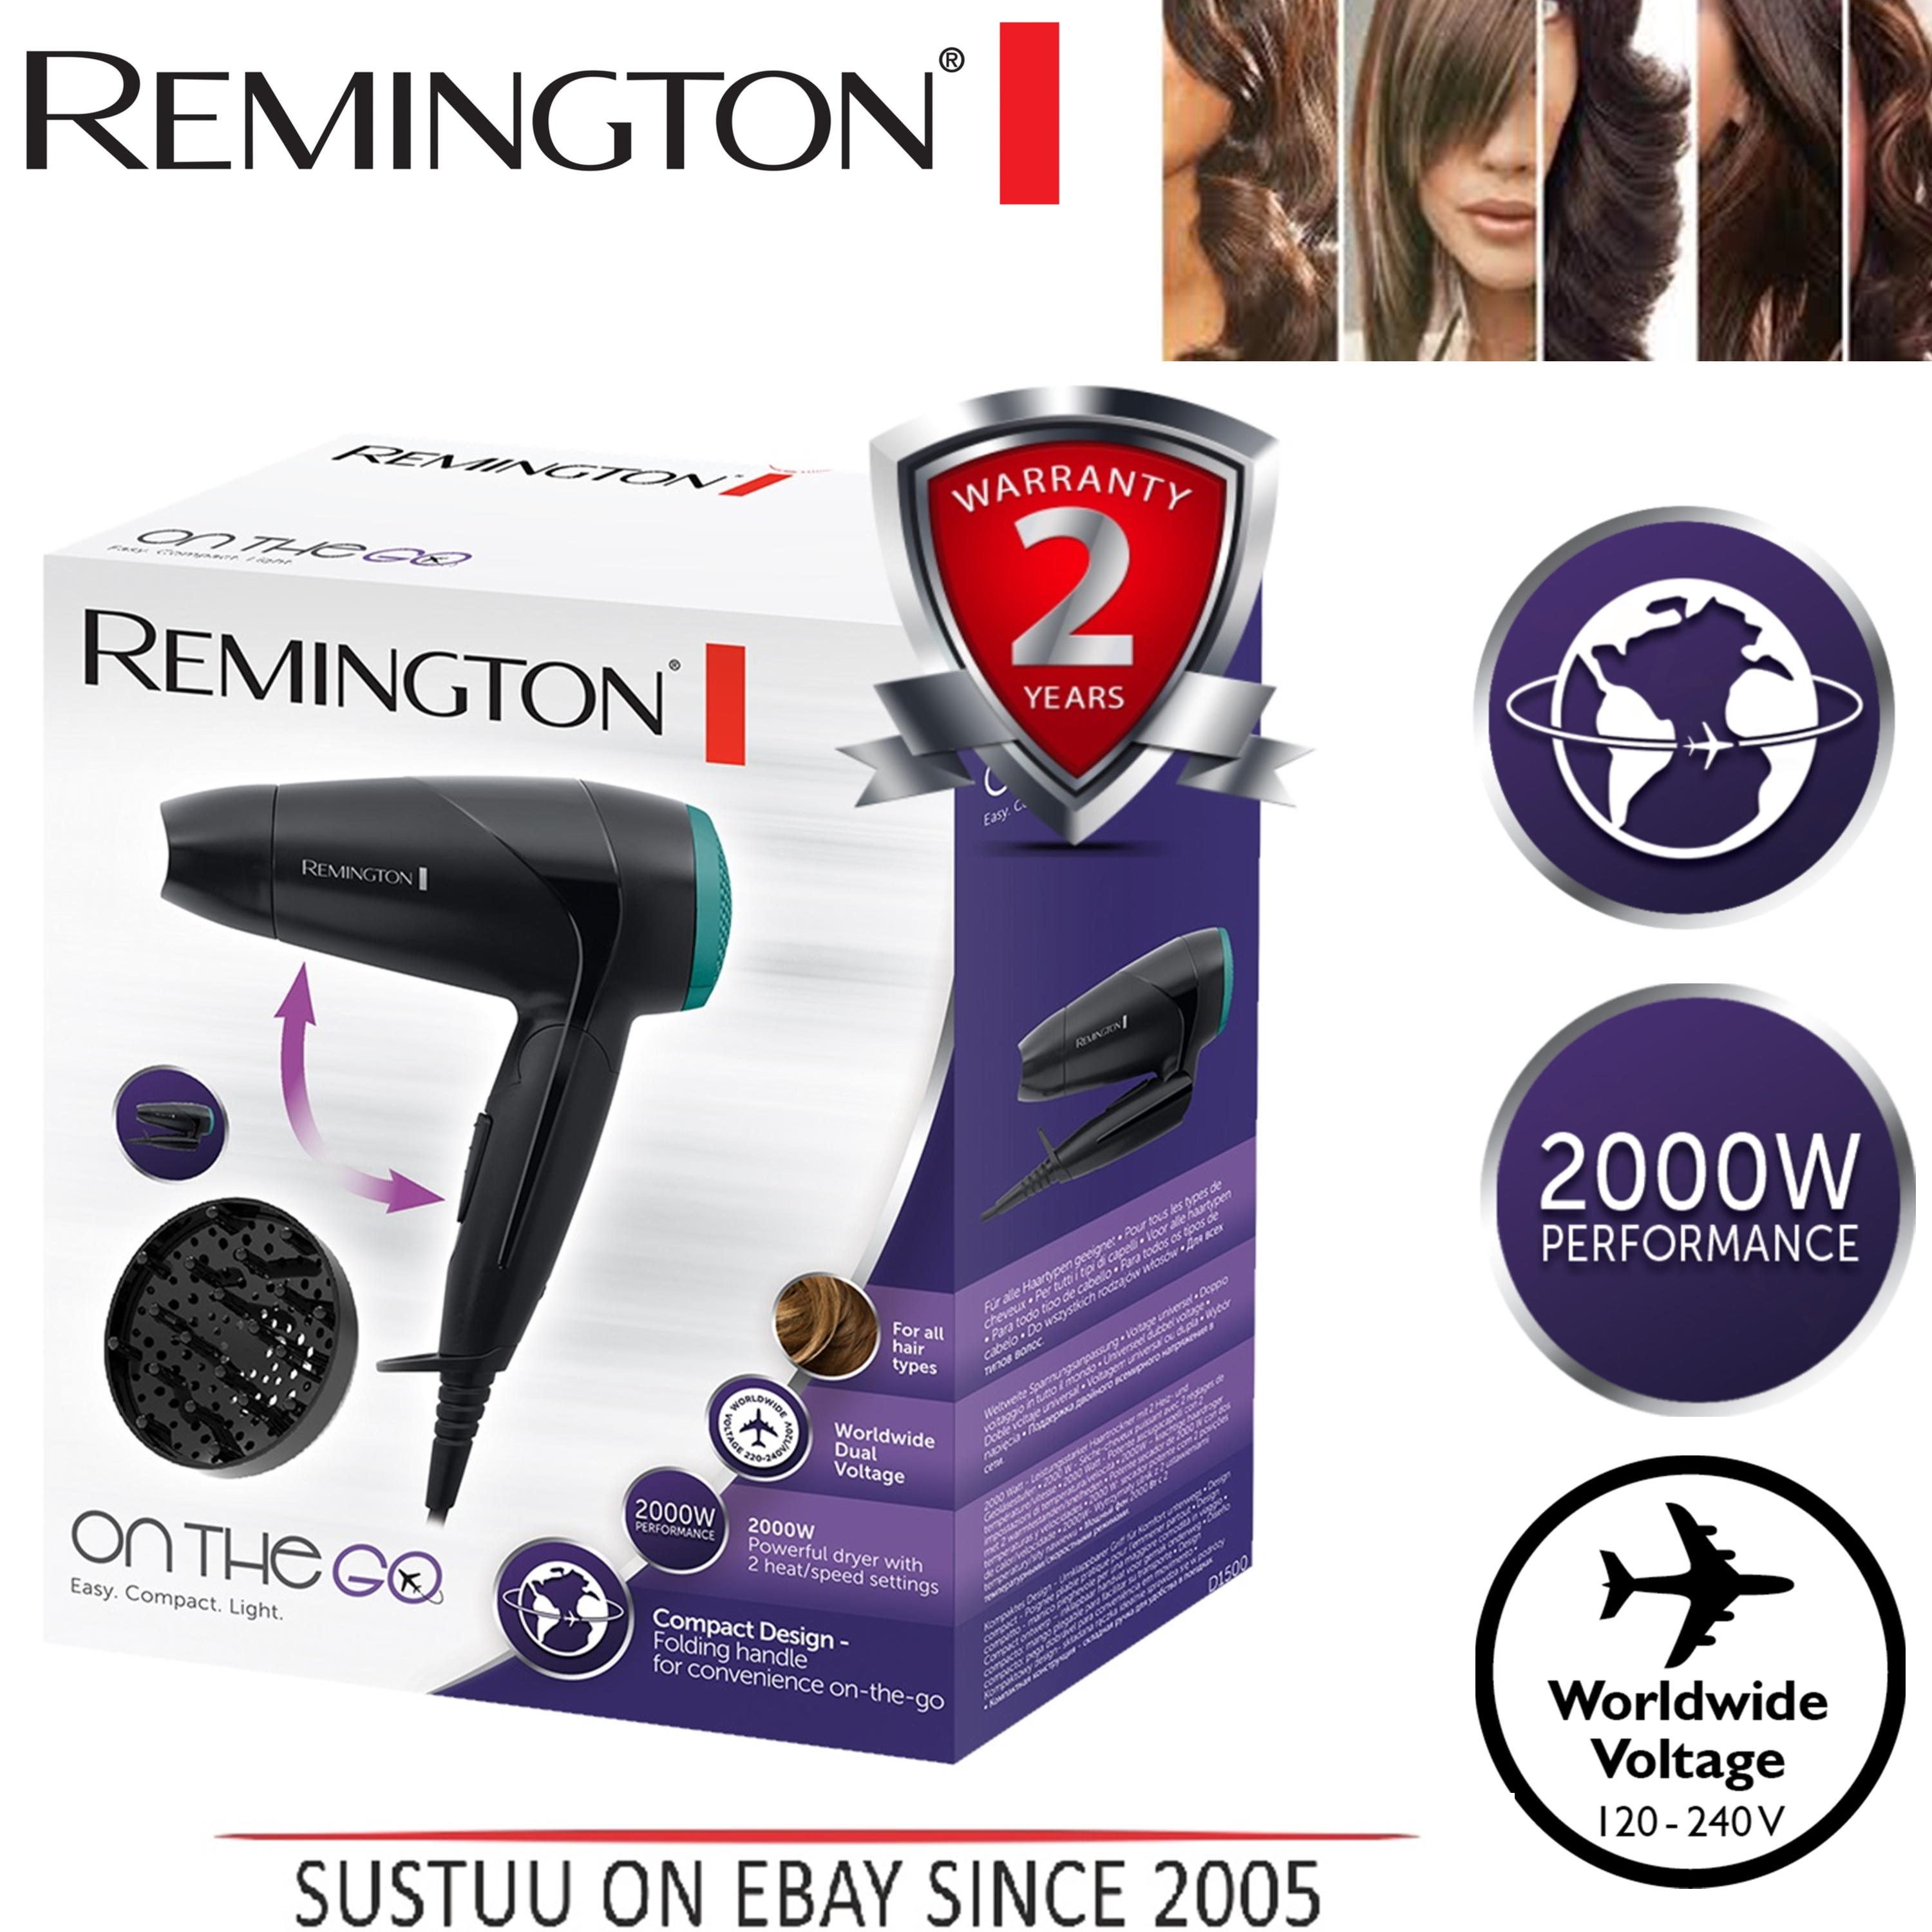 Remington D1500 Travel Hair Dryer Compact Diffuser Folding Handle 2000W Styler